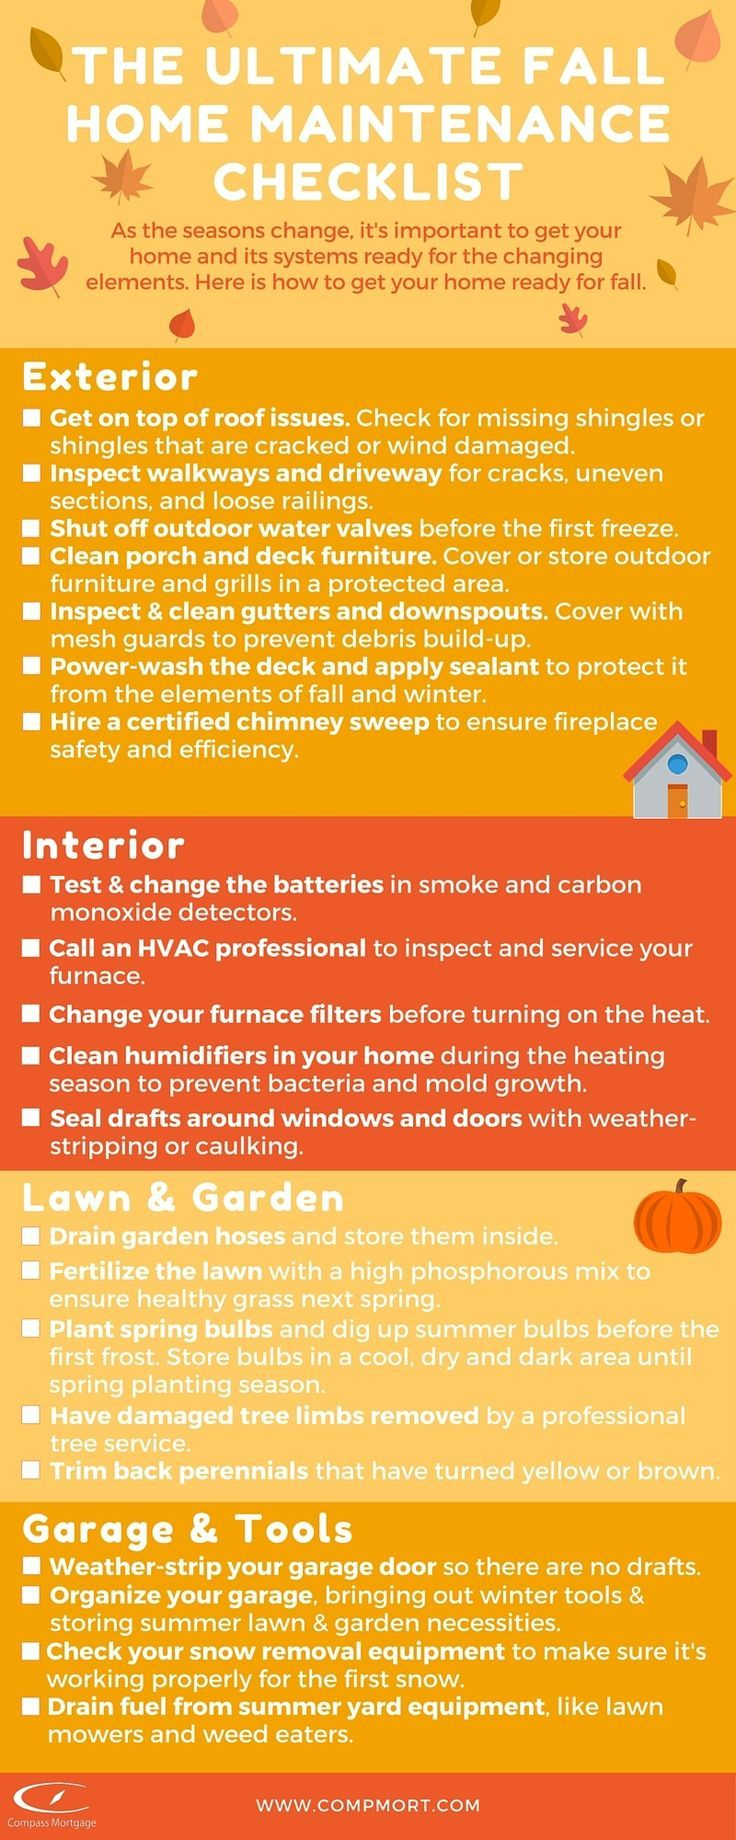 6 Home Maintenance Projects This Fall Fall Home Homemaintenancechecklist Maintenanc Home Maintenance Home Maintenance Checklist Home Maintenance Schedule